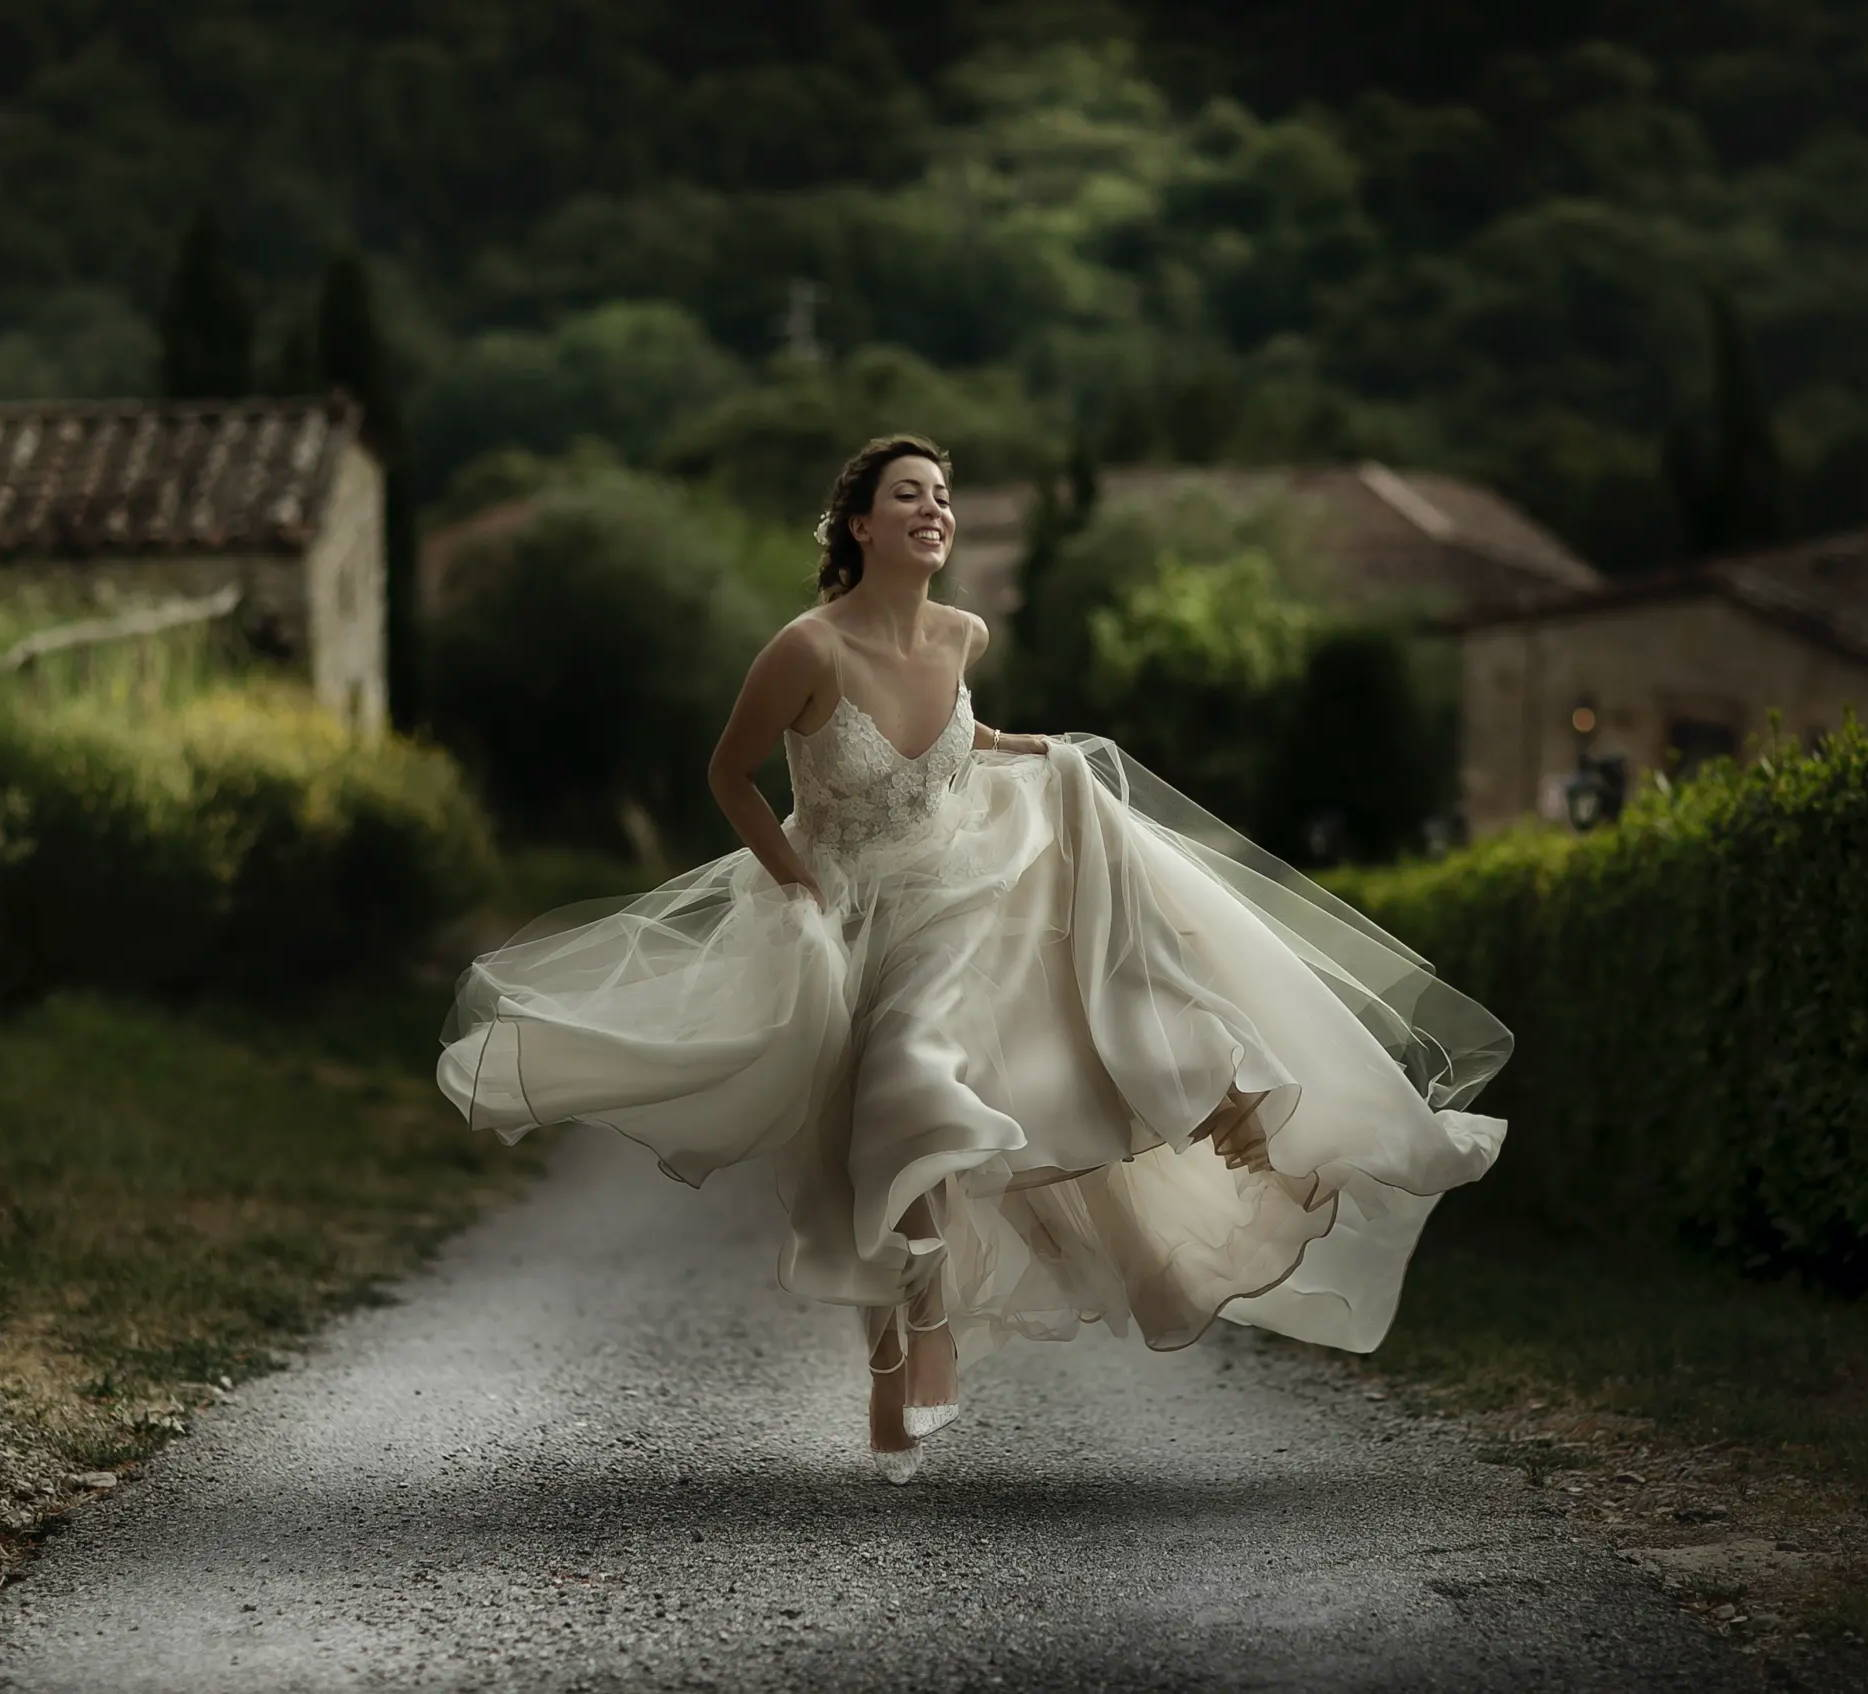 Camilla Gabrieli wedding in Tuscany white dress hilltop castle